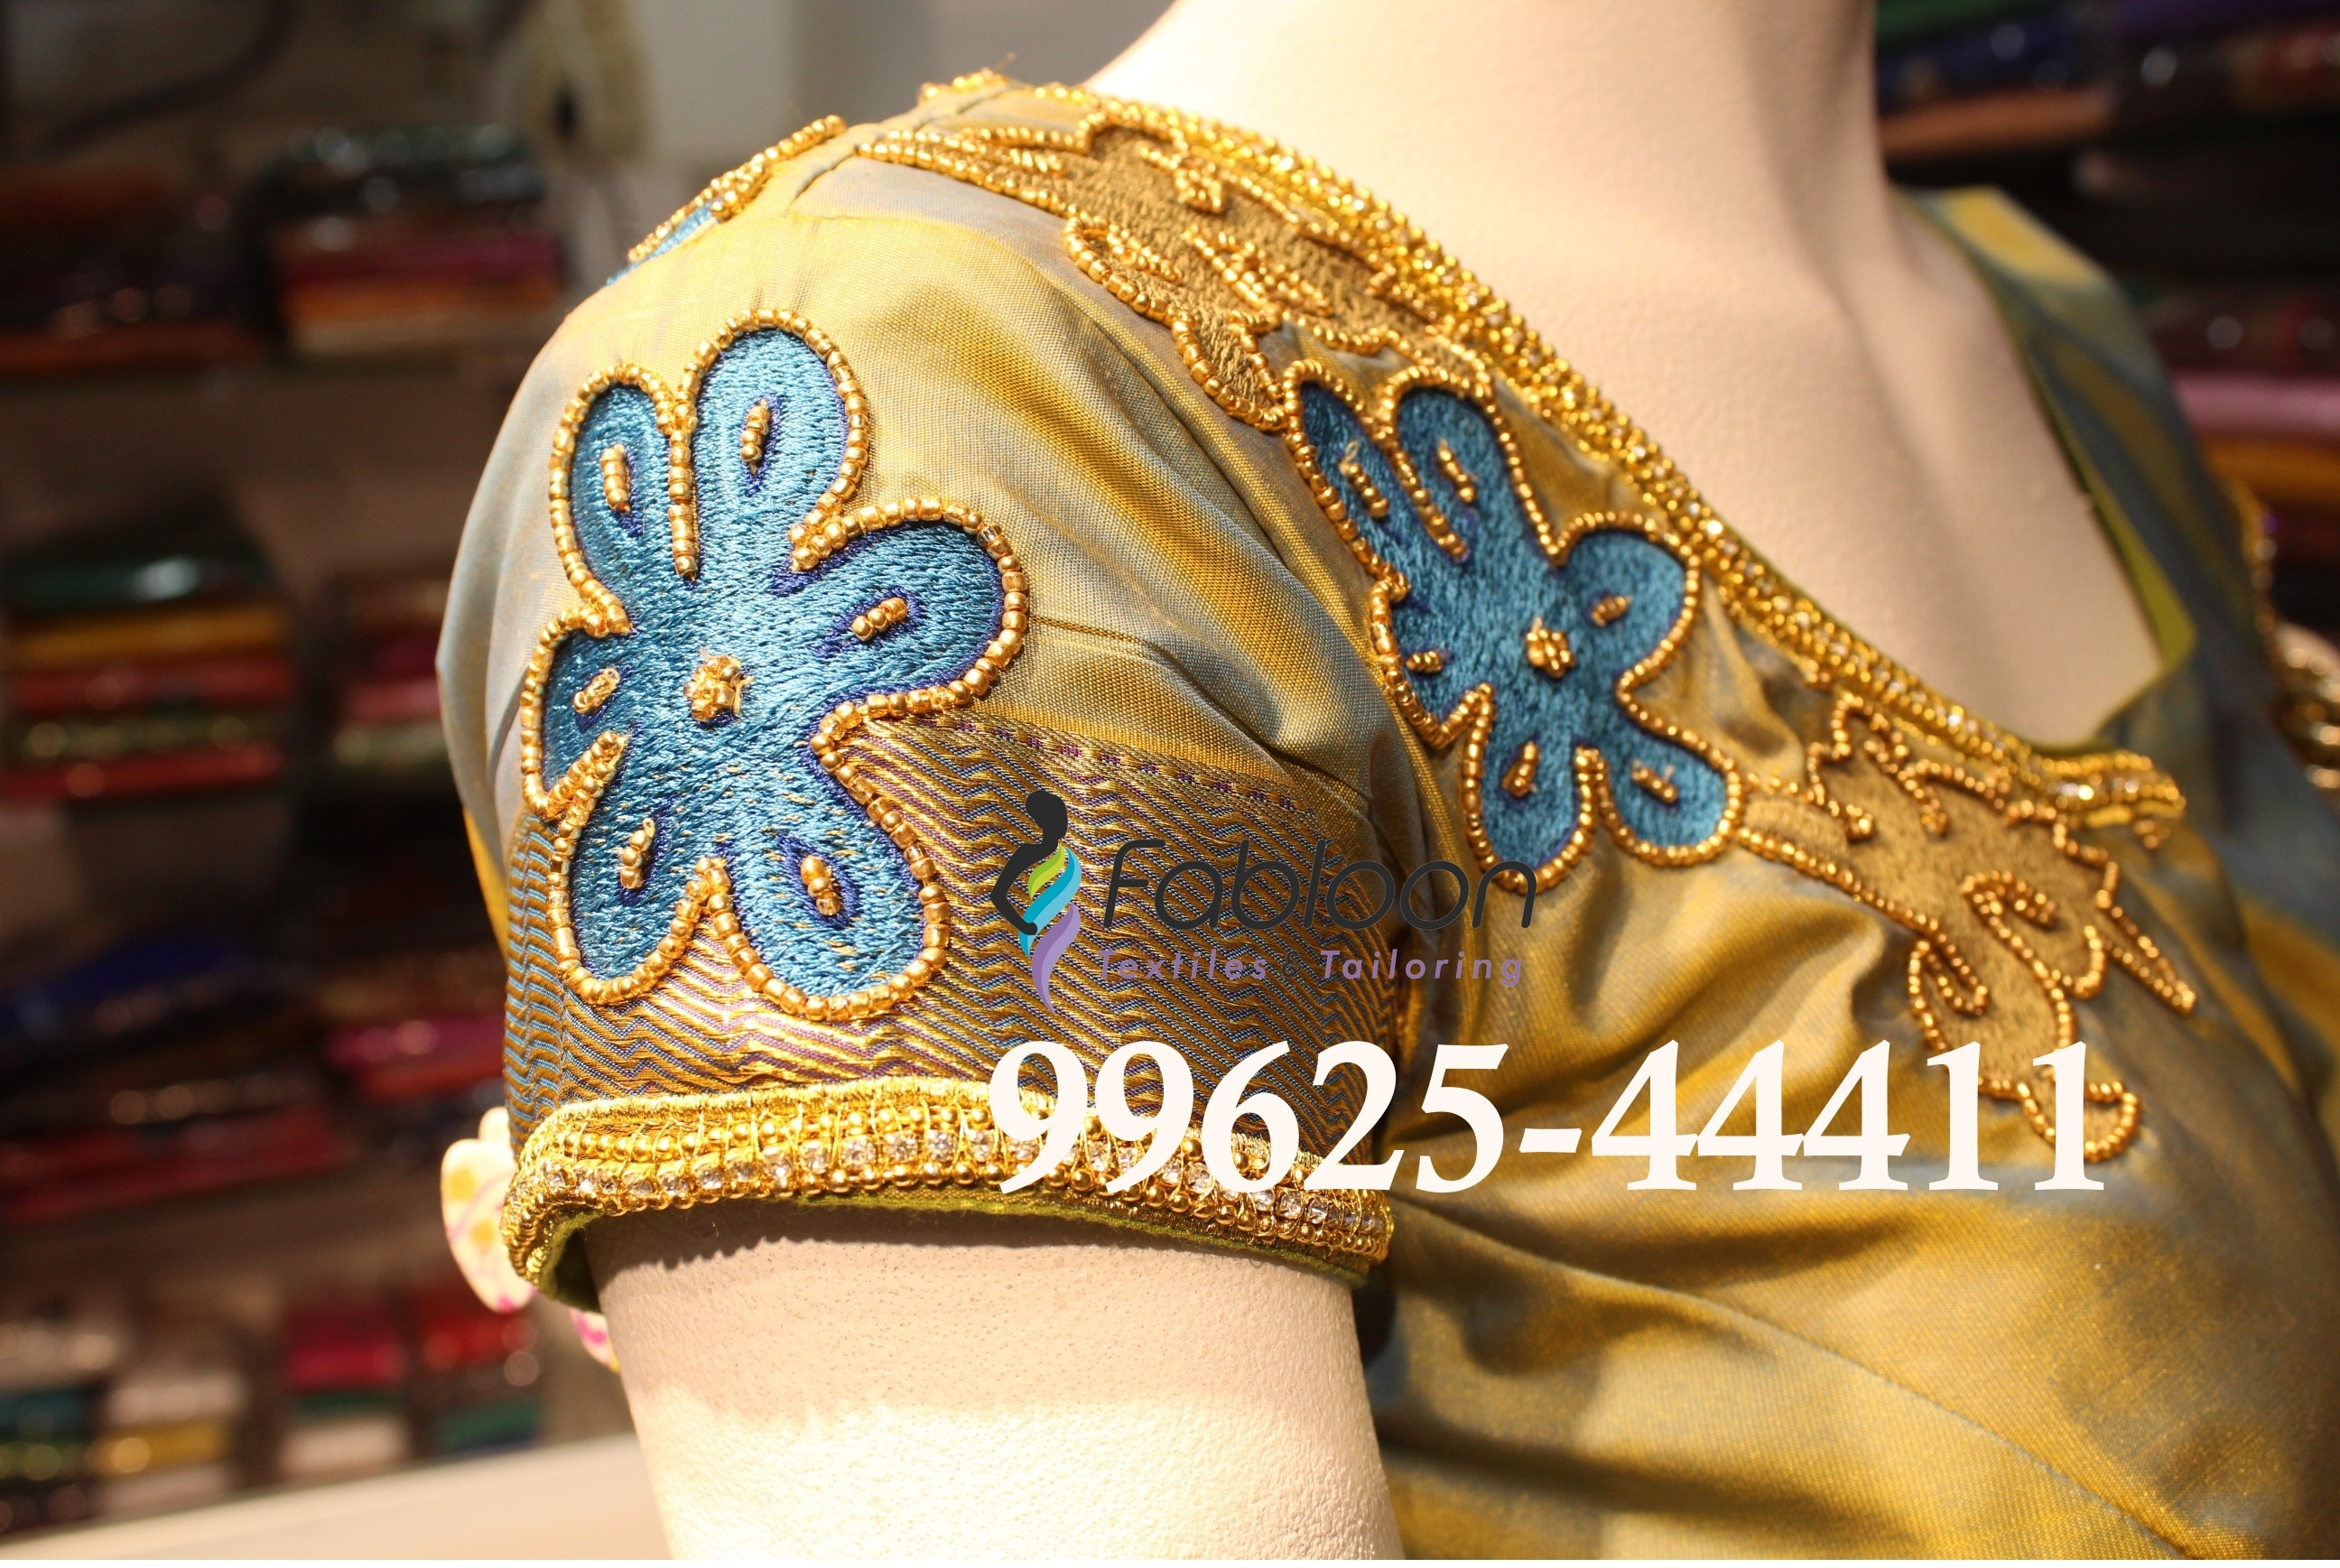 Hand Embroidery Designs Pattern At Fabloon Stitching In Vadapalani, Mob: +91 9962544411, 044 48644411.   Pretty Dresses Fashion Boutique Trendy Dresses Fashion Store Check all updates for more collections.